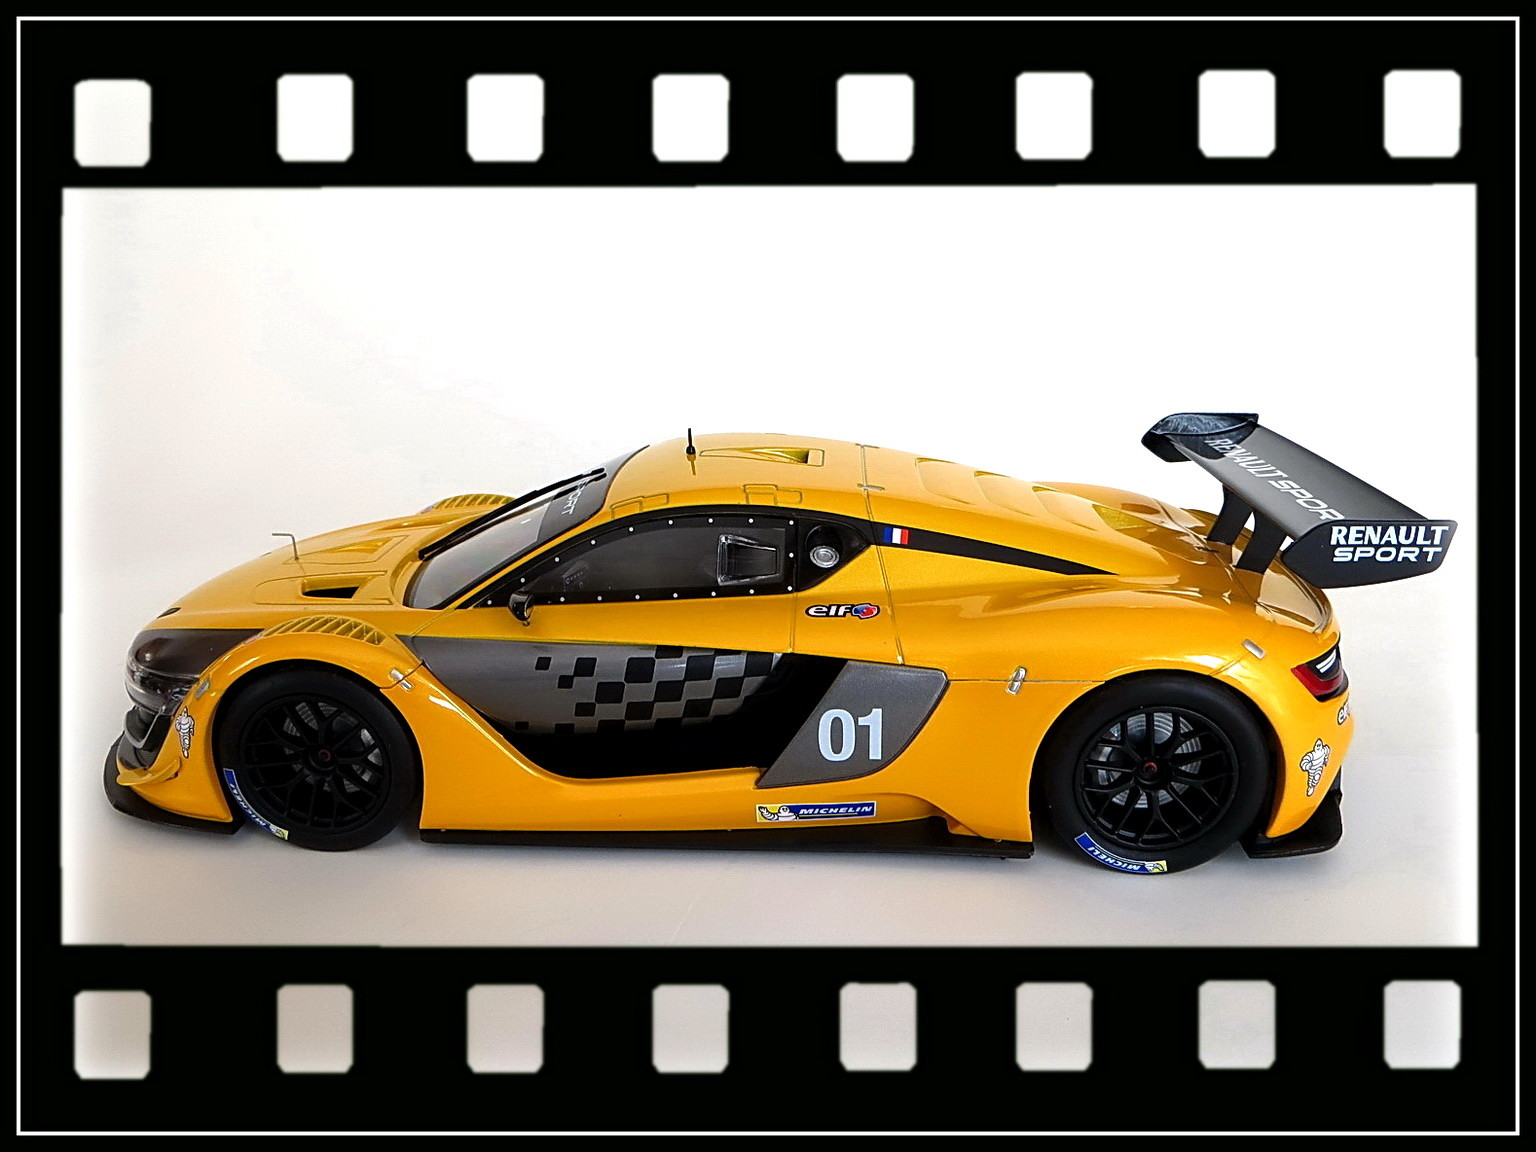 renault-rs 01-2015-010